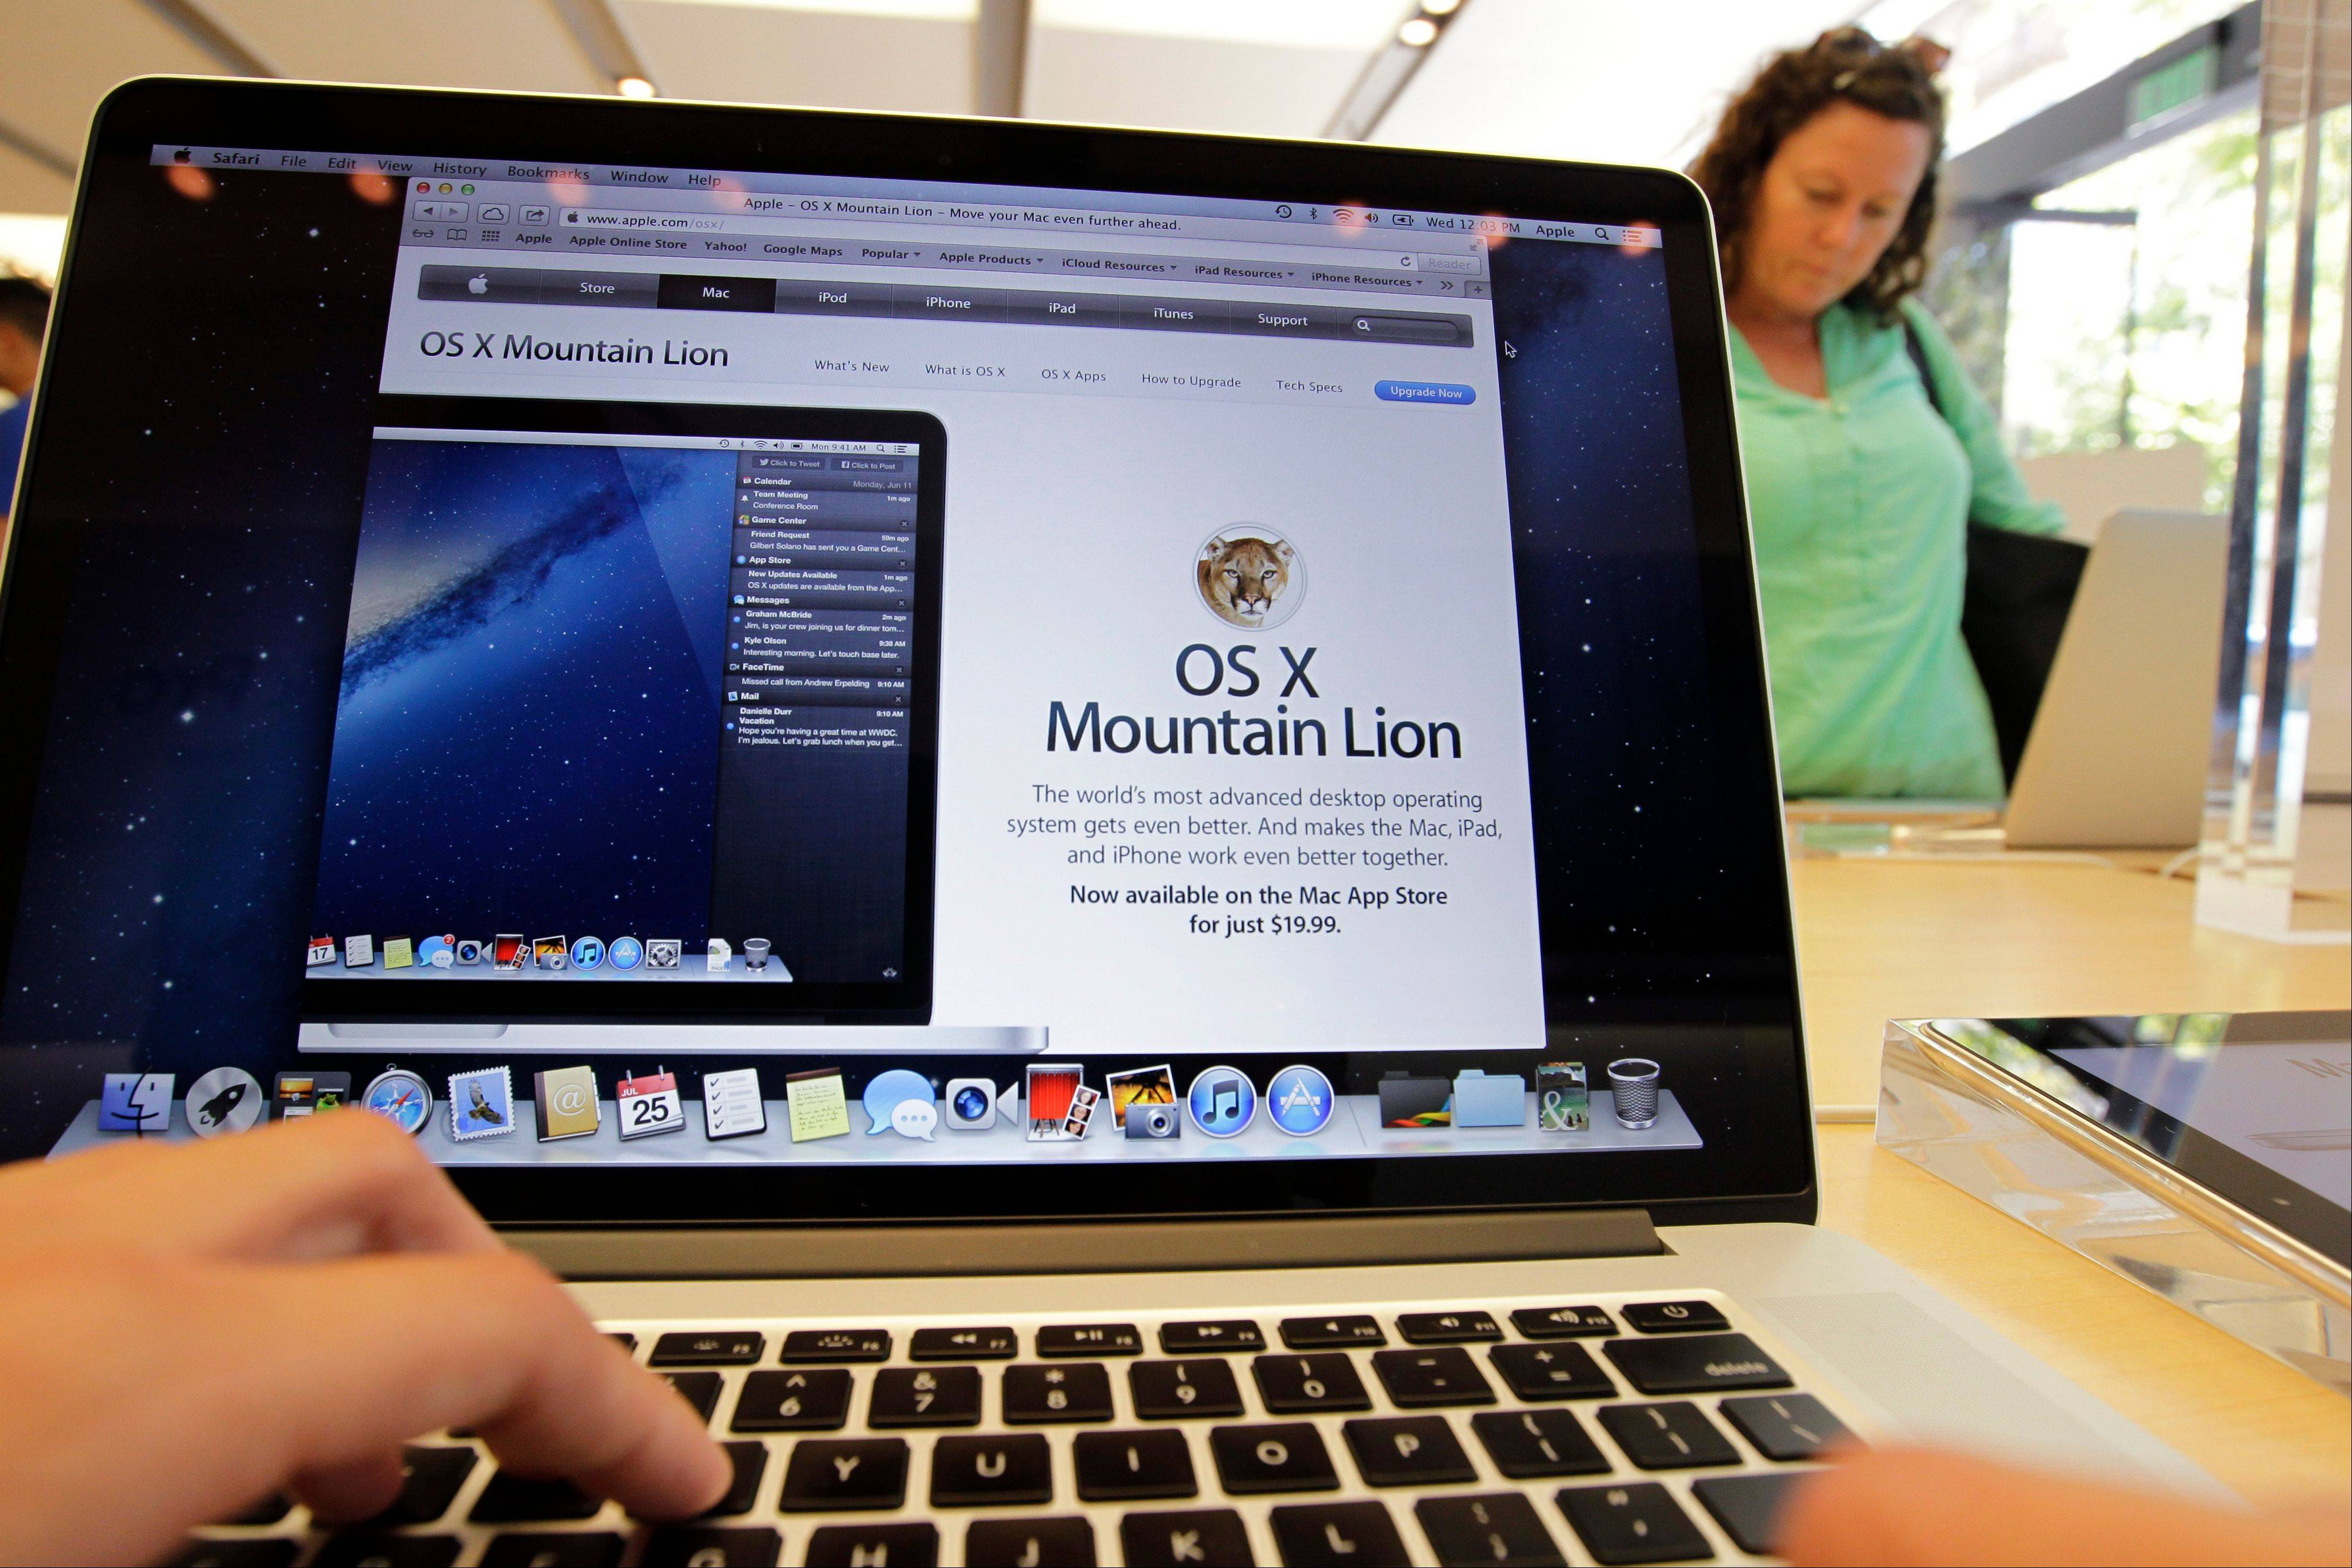 A customer looks at the new OS X Mountain Lion operating system at an Apple store in Palo Alto, Calif. Apple Inc. released its new operating system for Mac computers on Wednesday, with features borrowed from mobile devices and a tighter integration with online file storage.